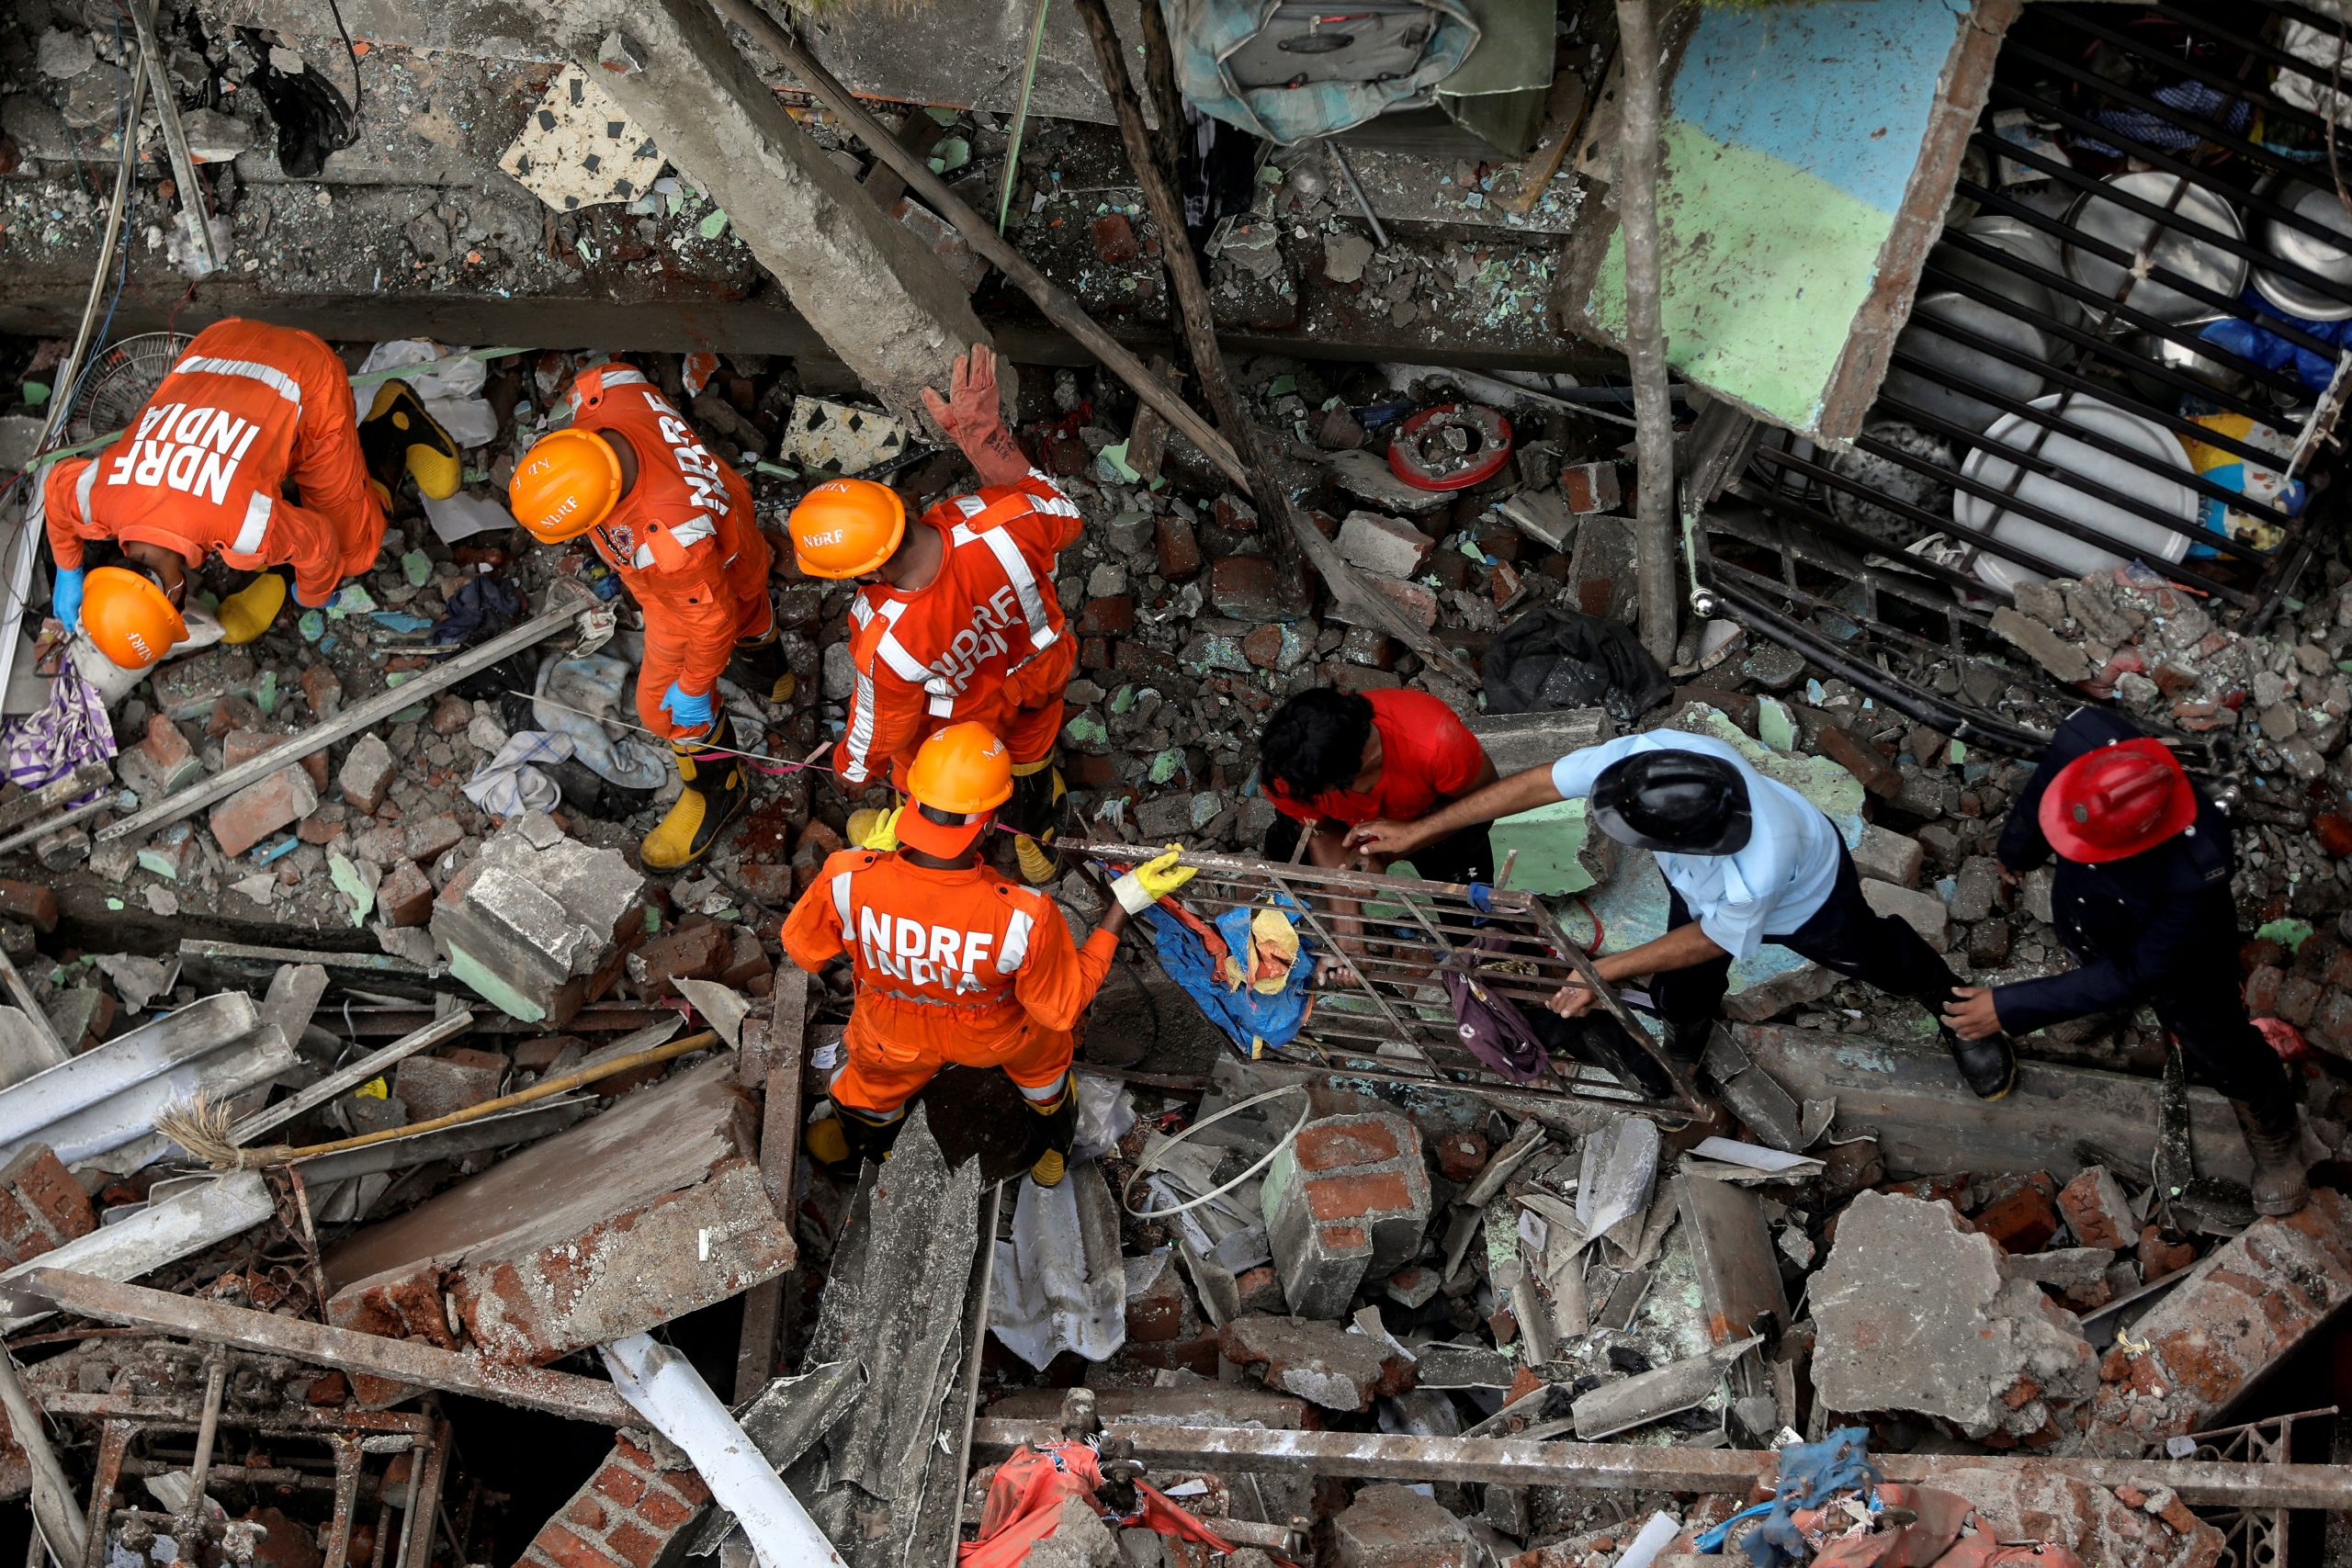 National Disaster Response Force (NDRF) officials and firemen remove debris as they look for survivors after a three-storey residential building collapsed in Bhiwandi on the outskirts of Mumbai, India, September 21, 2020. REUTERS/Francis Mascarenhas